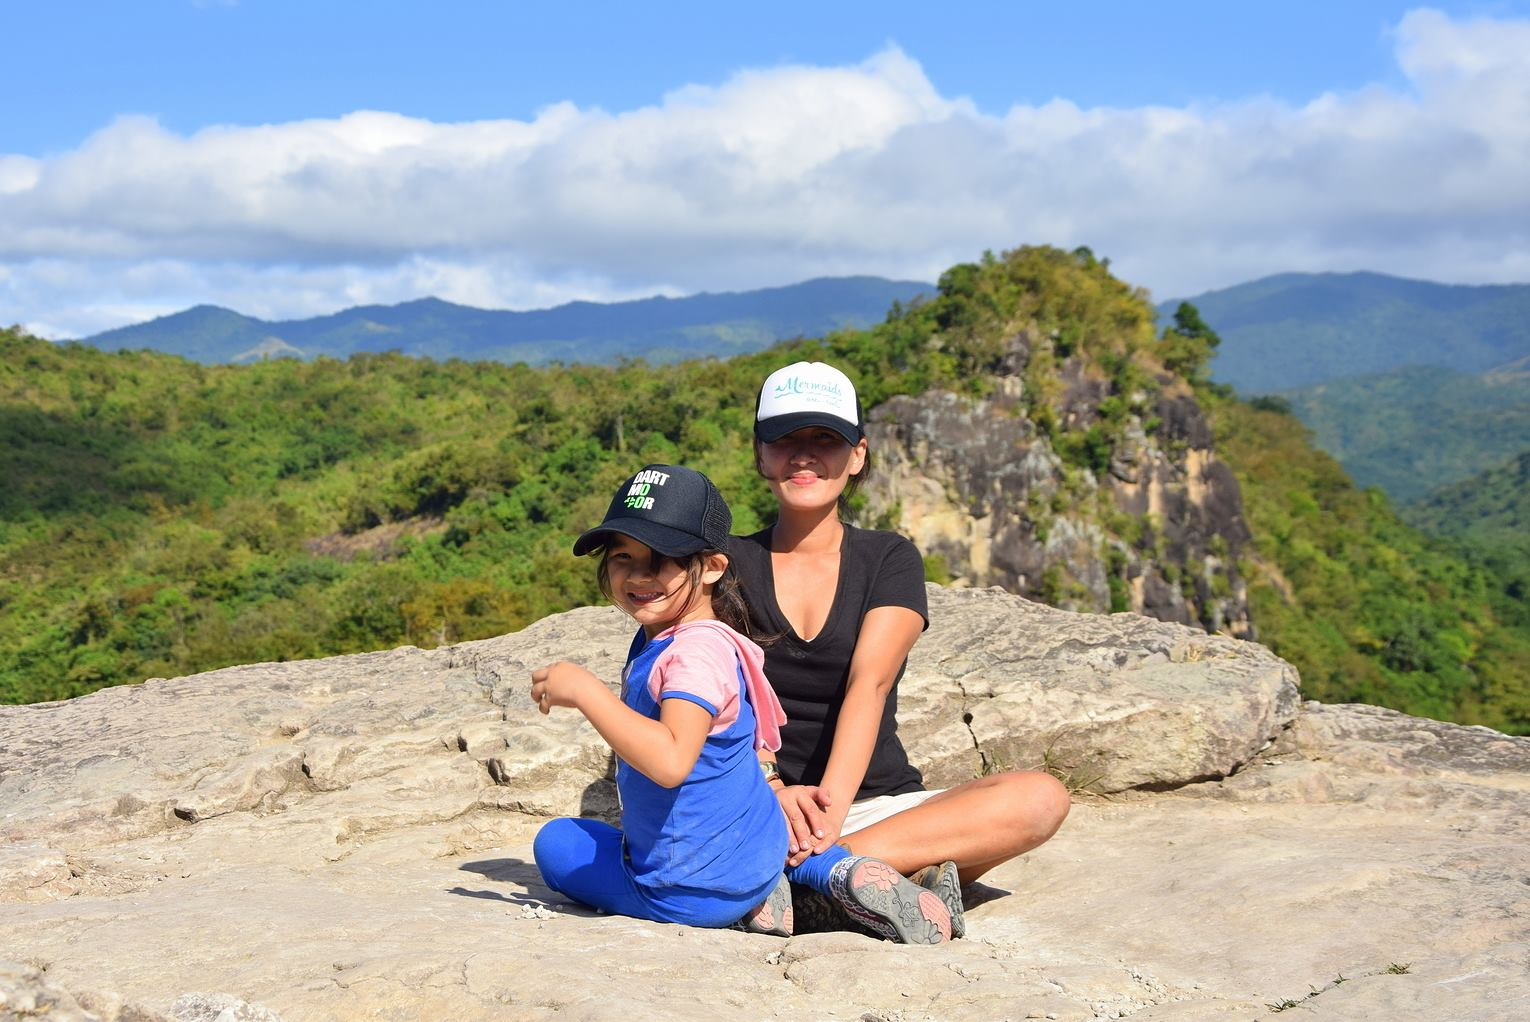 FUN AND SAFETY. You can go on adventures like mountain climbing while still mindful of safety. Gretchen Filart has been climbing mountains with Lia since the latter was just two years old. Photo courtesy of Gretchen Filart